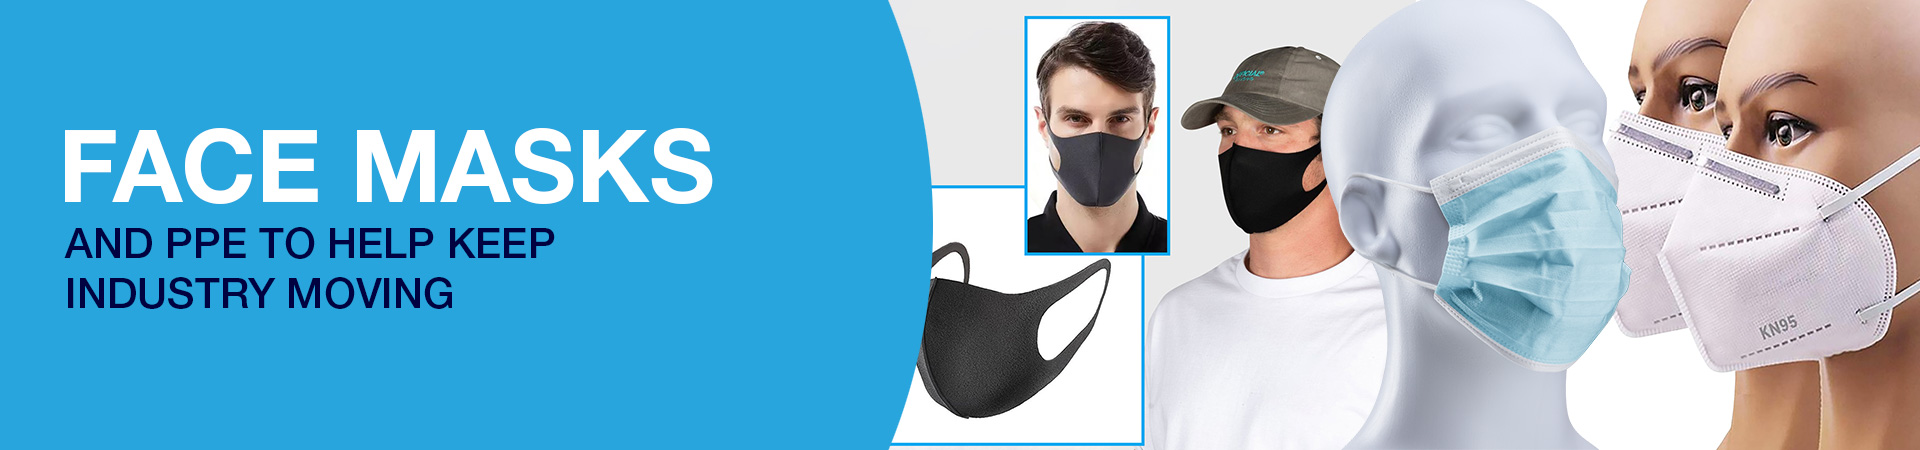 Face Masks and PPE to protect from coronavirus